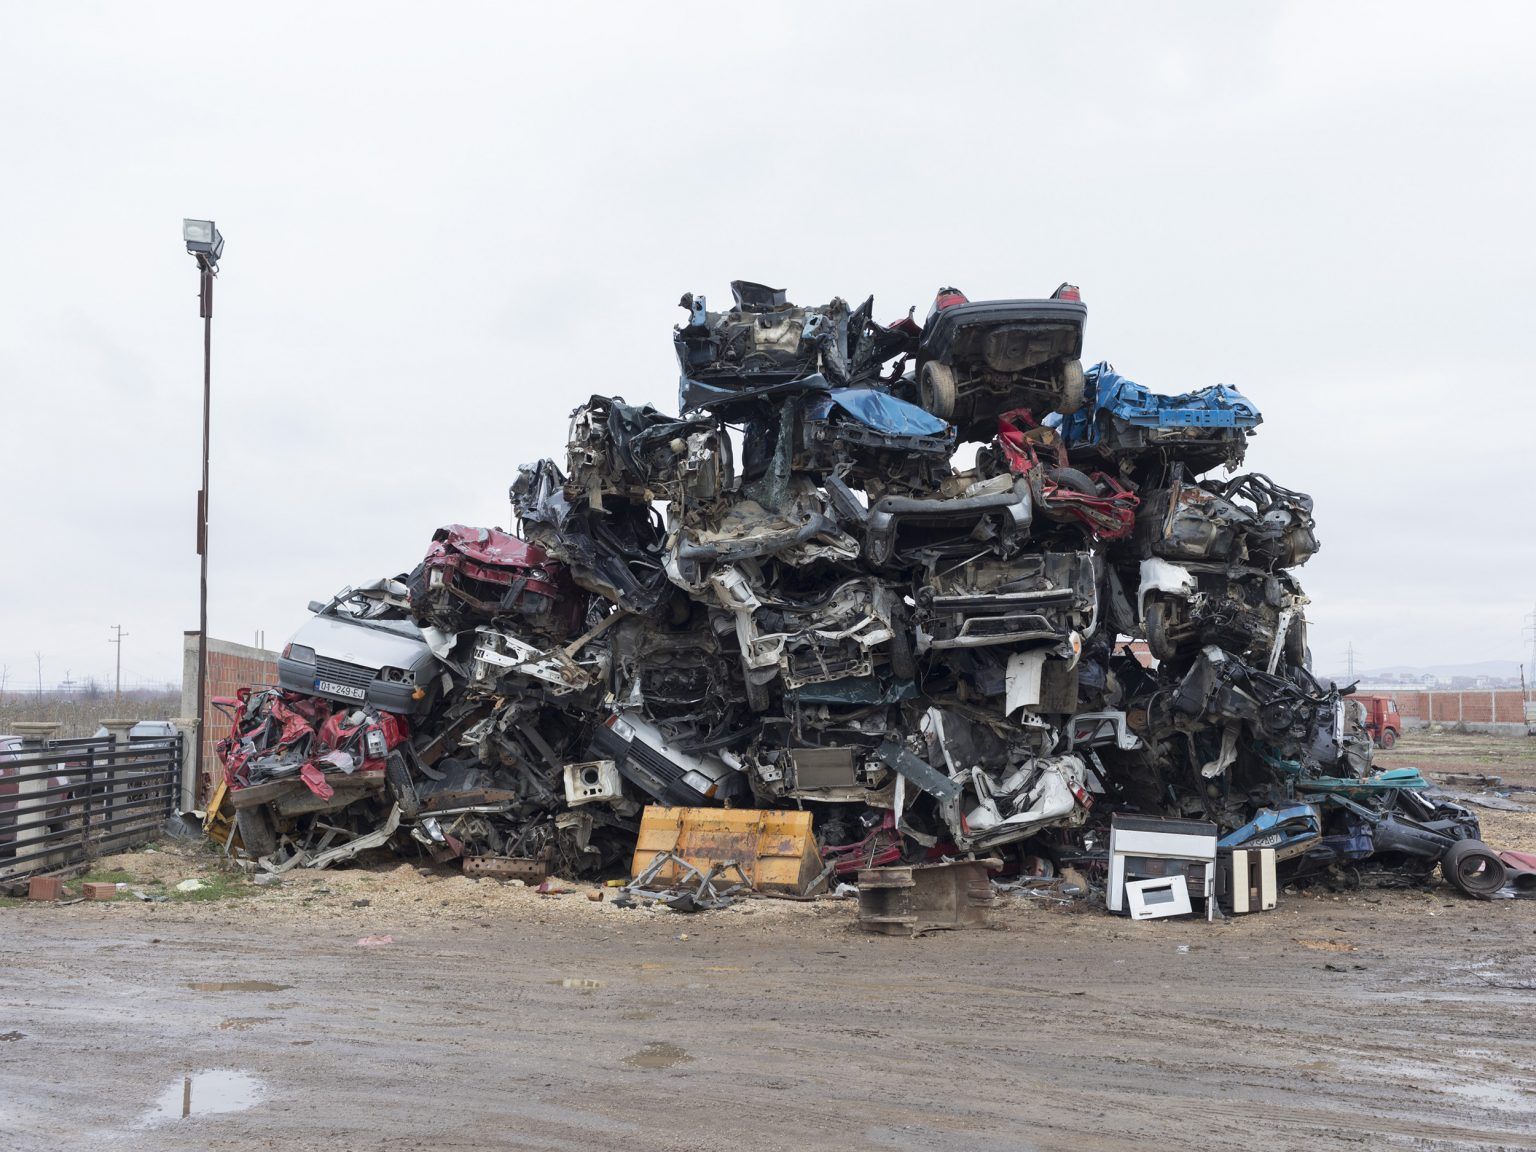 A junkyard run by Romas. The Roma community is one of the minorities living in Kosovo.